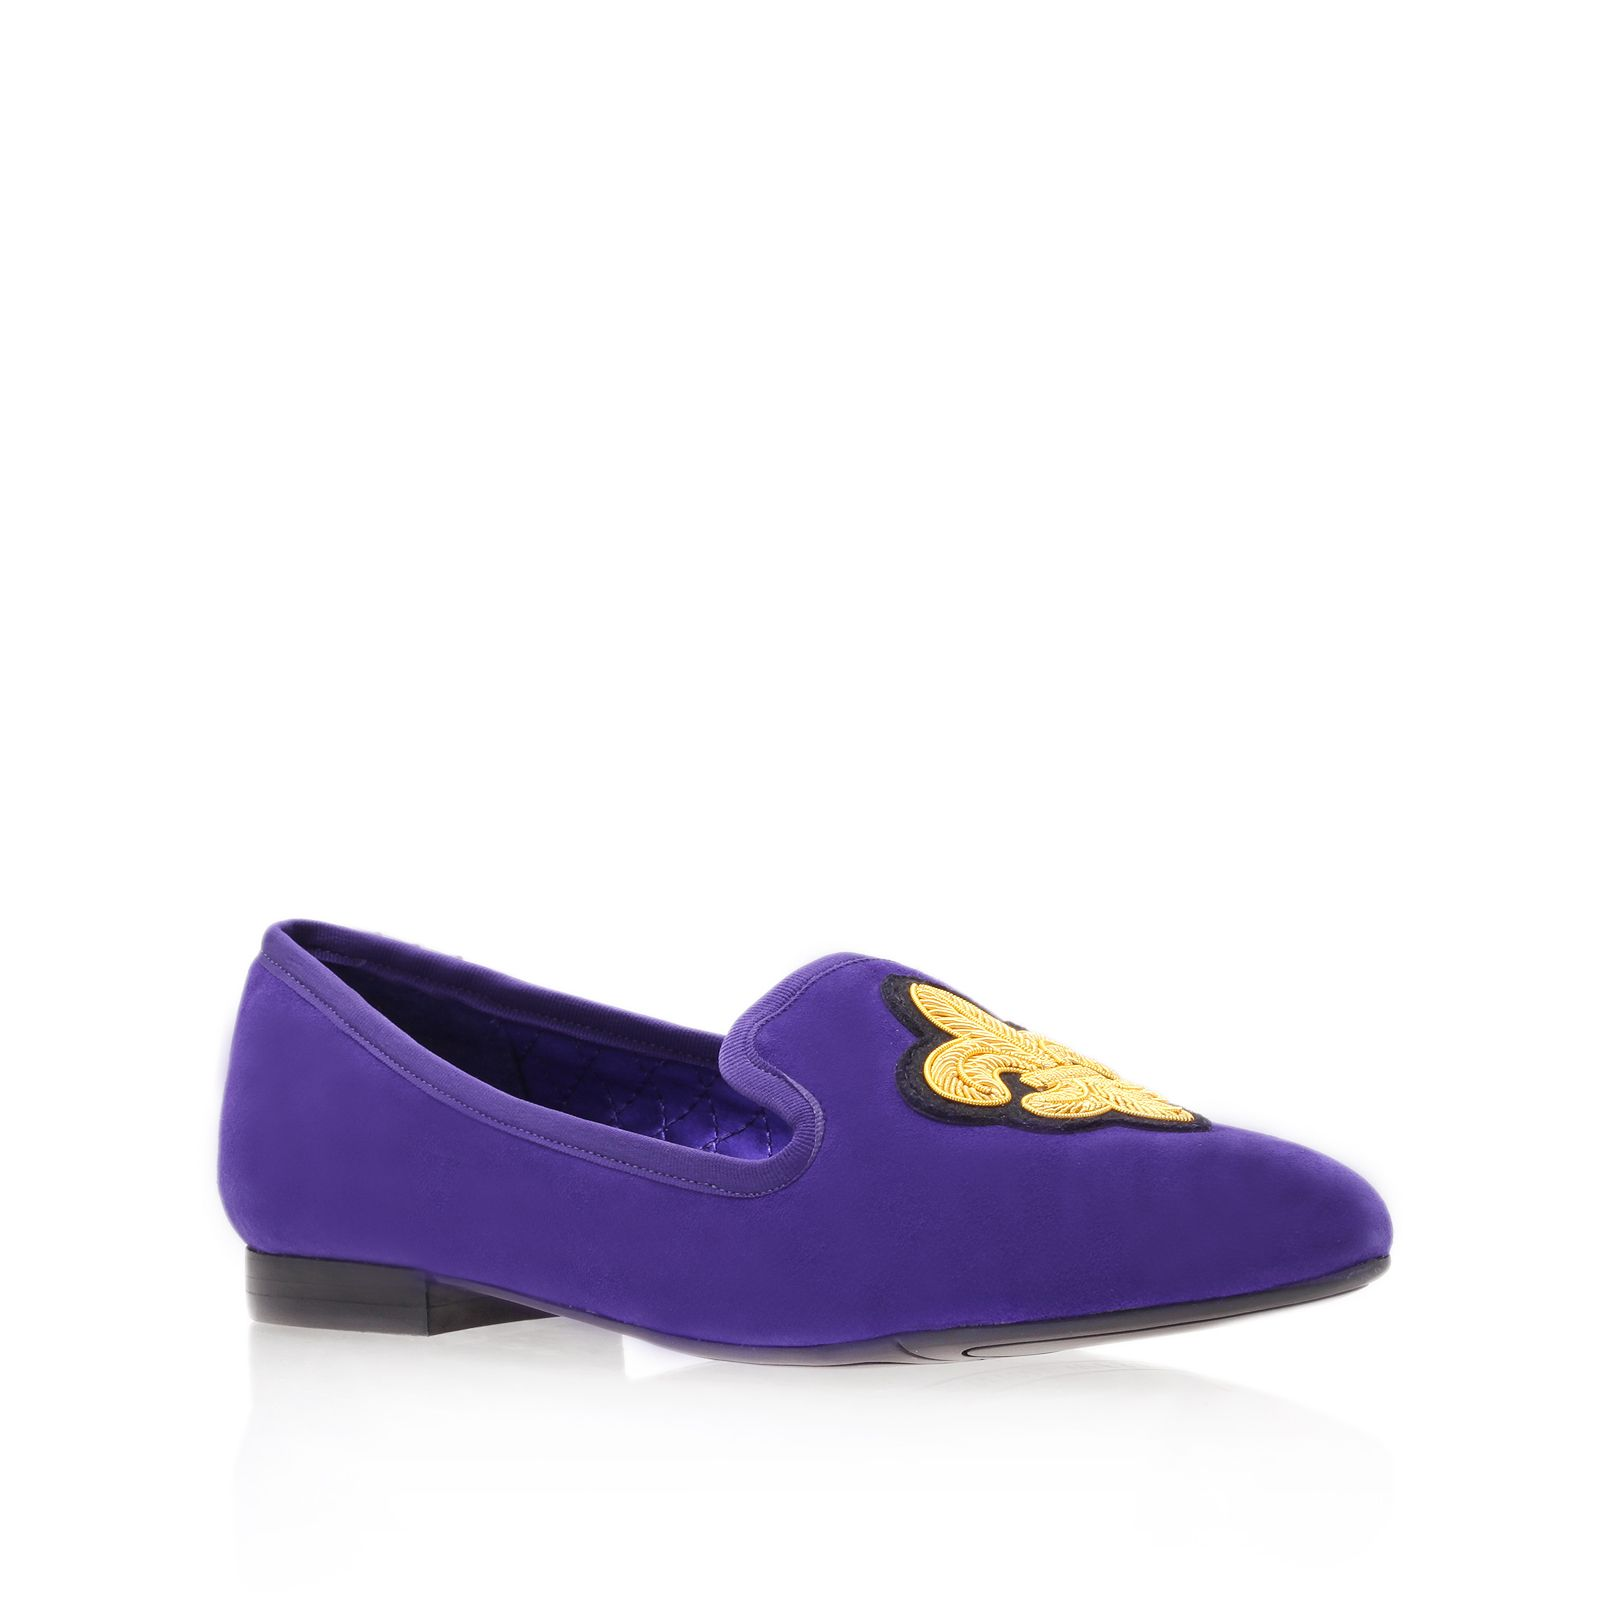 Leyna slipper shoes